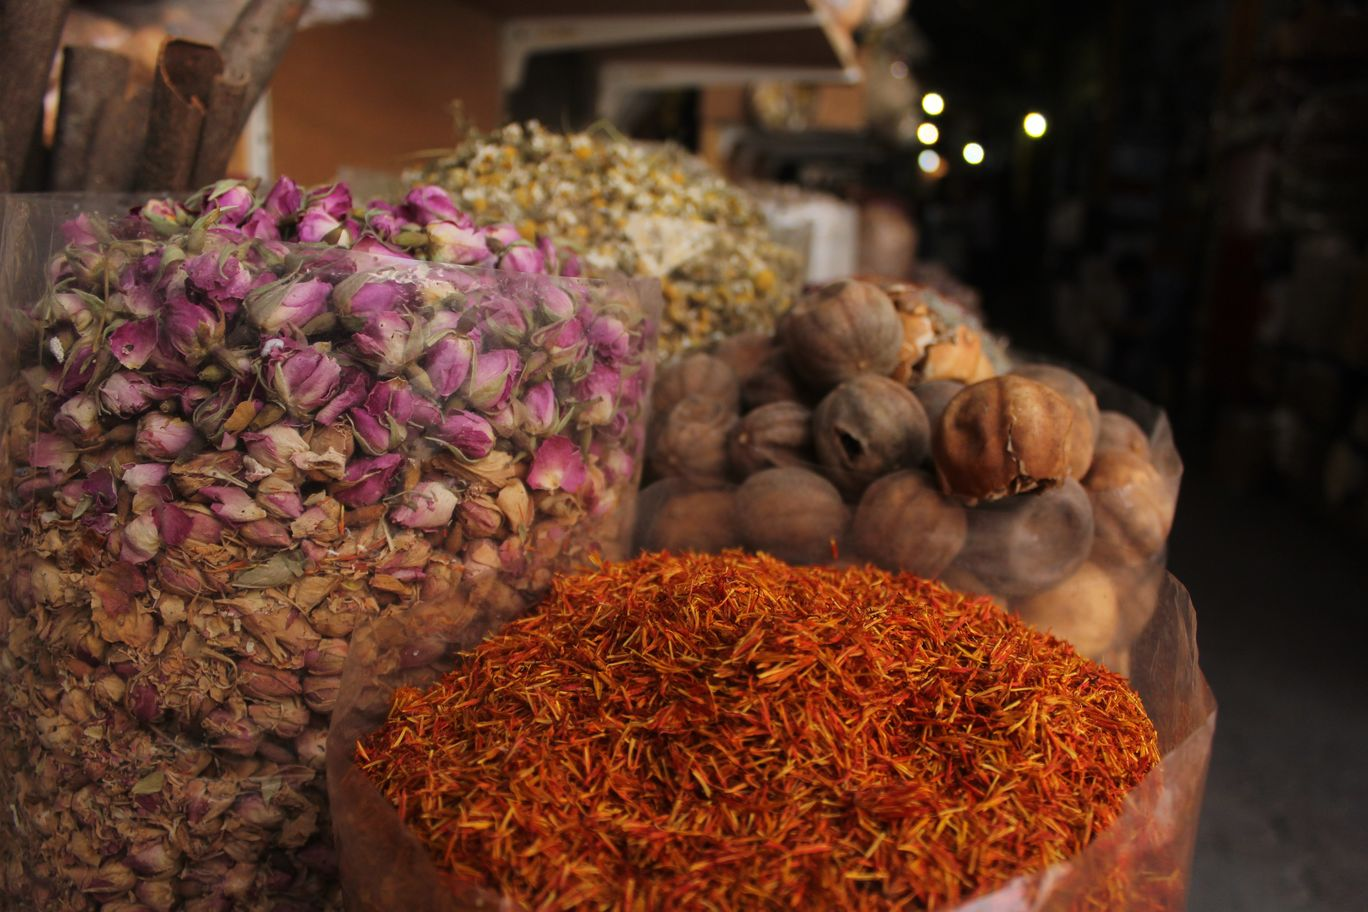 Photo of Dubai Spice Souq Market - Dubai - United Arab Emirates By Anushka Khurana